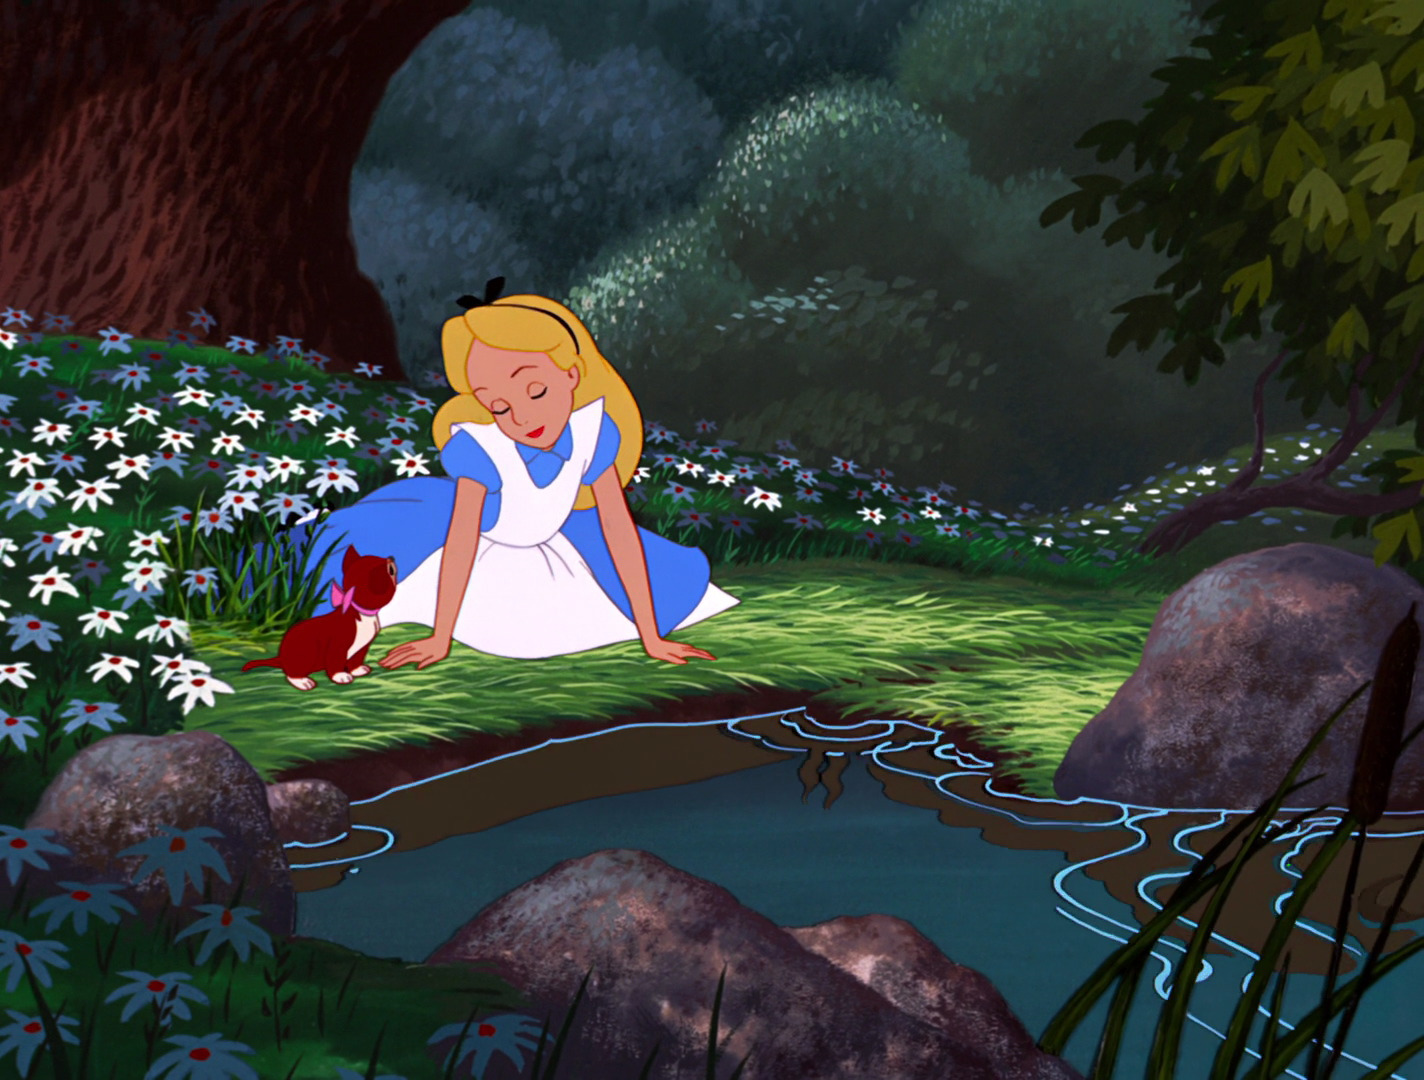 alice in wonderland images screencaps hd wallpaper and